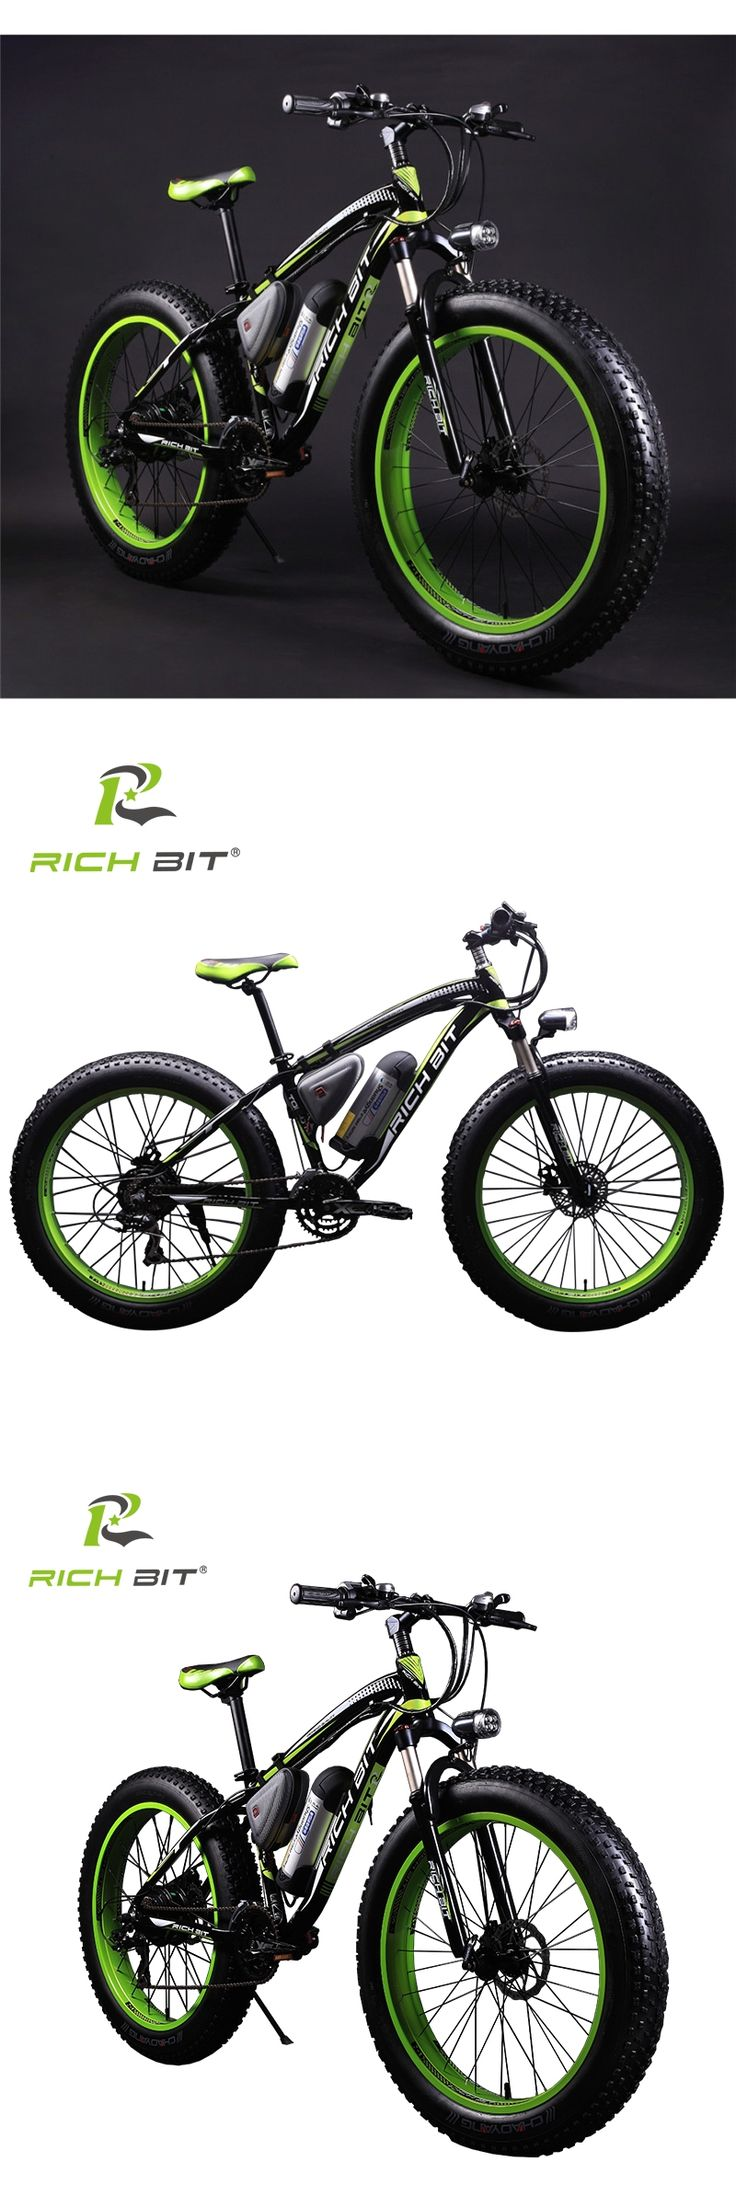 New 21speed Electric Fat Bike 36V 10.4AH Lithium Battery Electric Snow Bike 36V 350 Watt Electric Mountain Bicycle Road Cycling